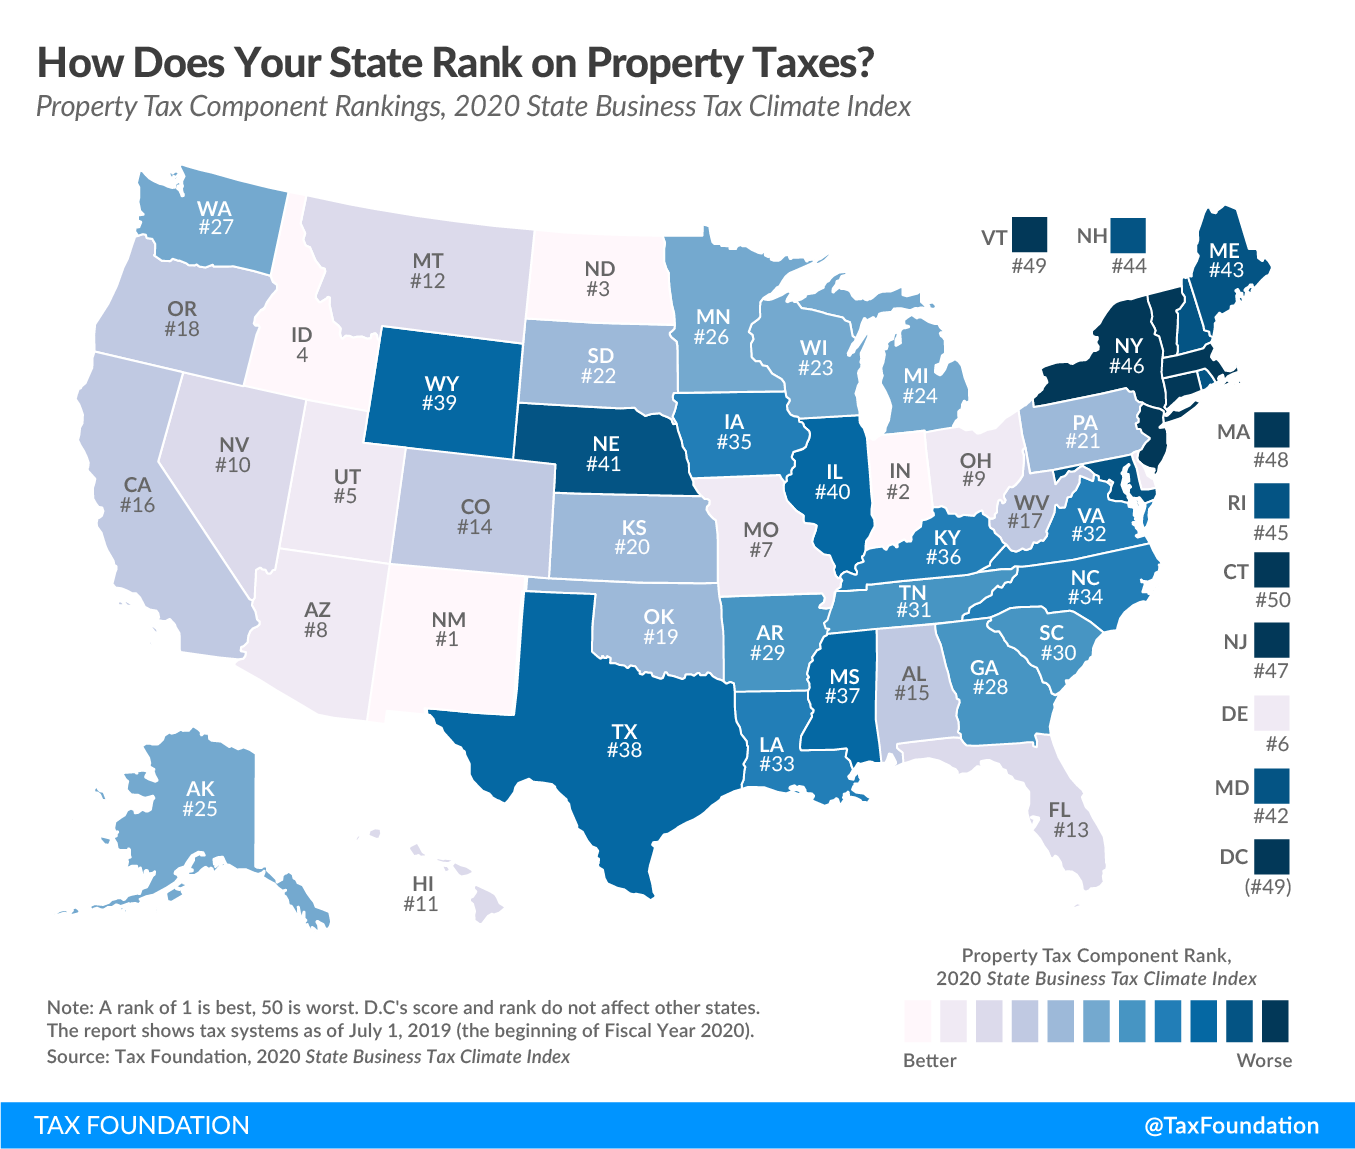 Best and worst property tax codes in the country. See full state property tax code rankings in 2019.